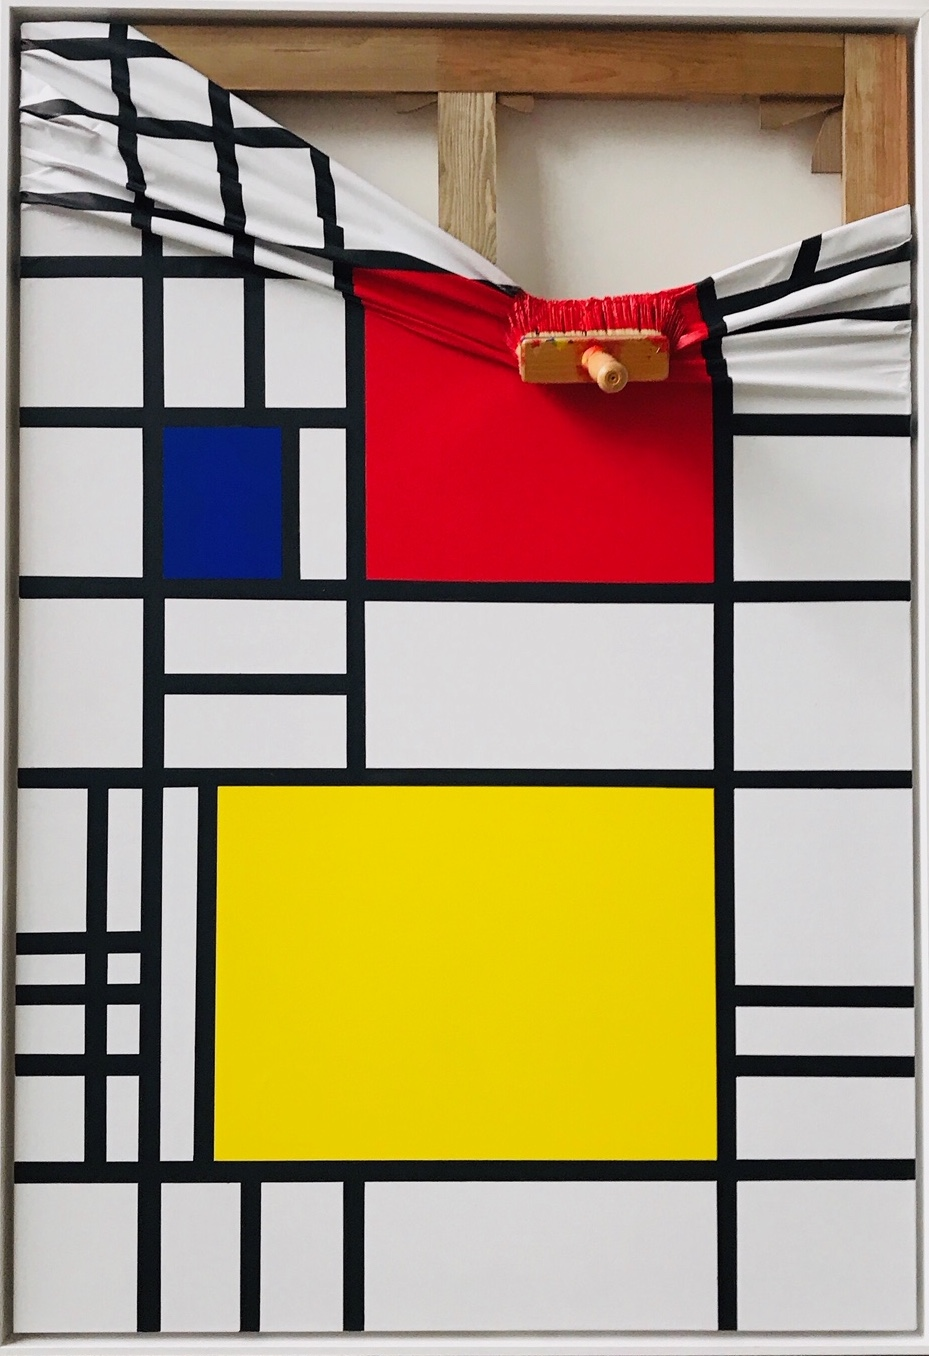 Mondrian Rouge by Jean Paul Donadini